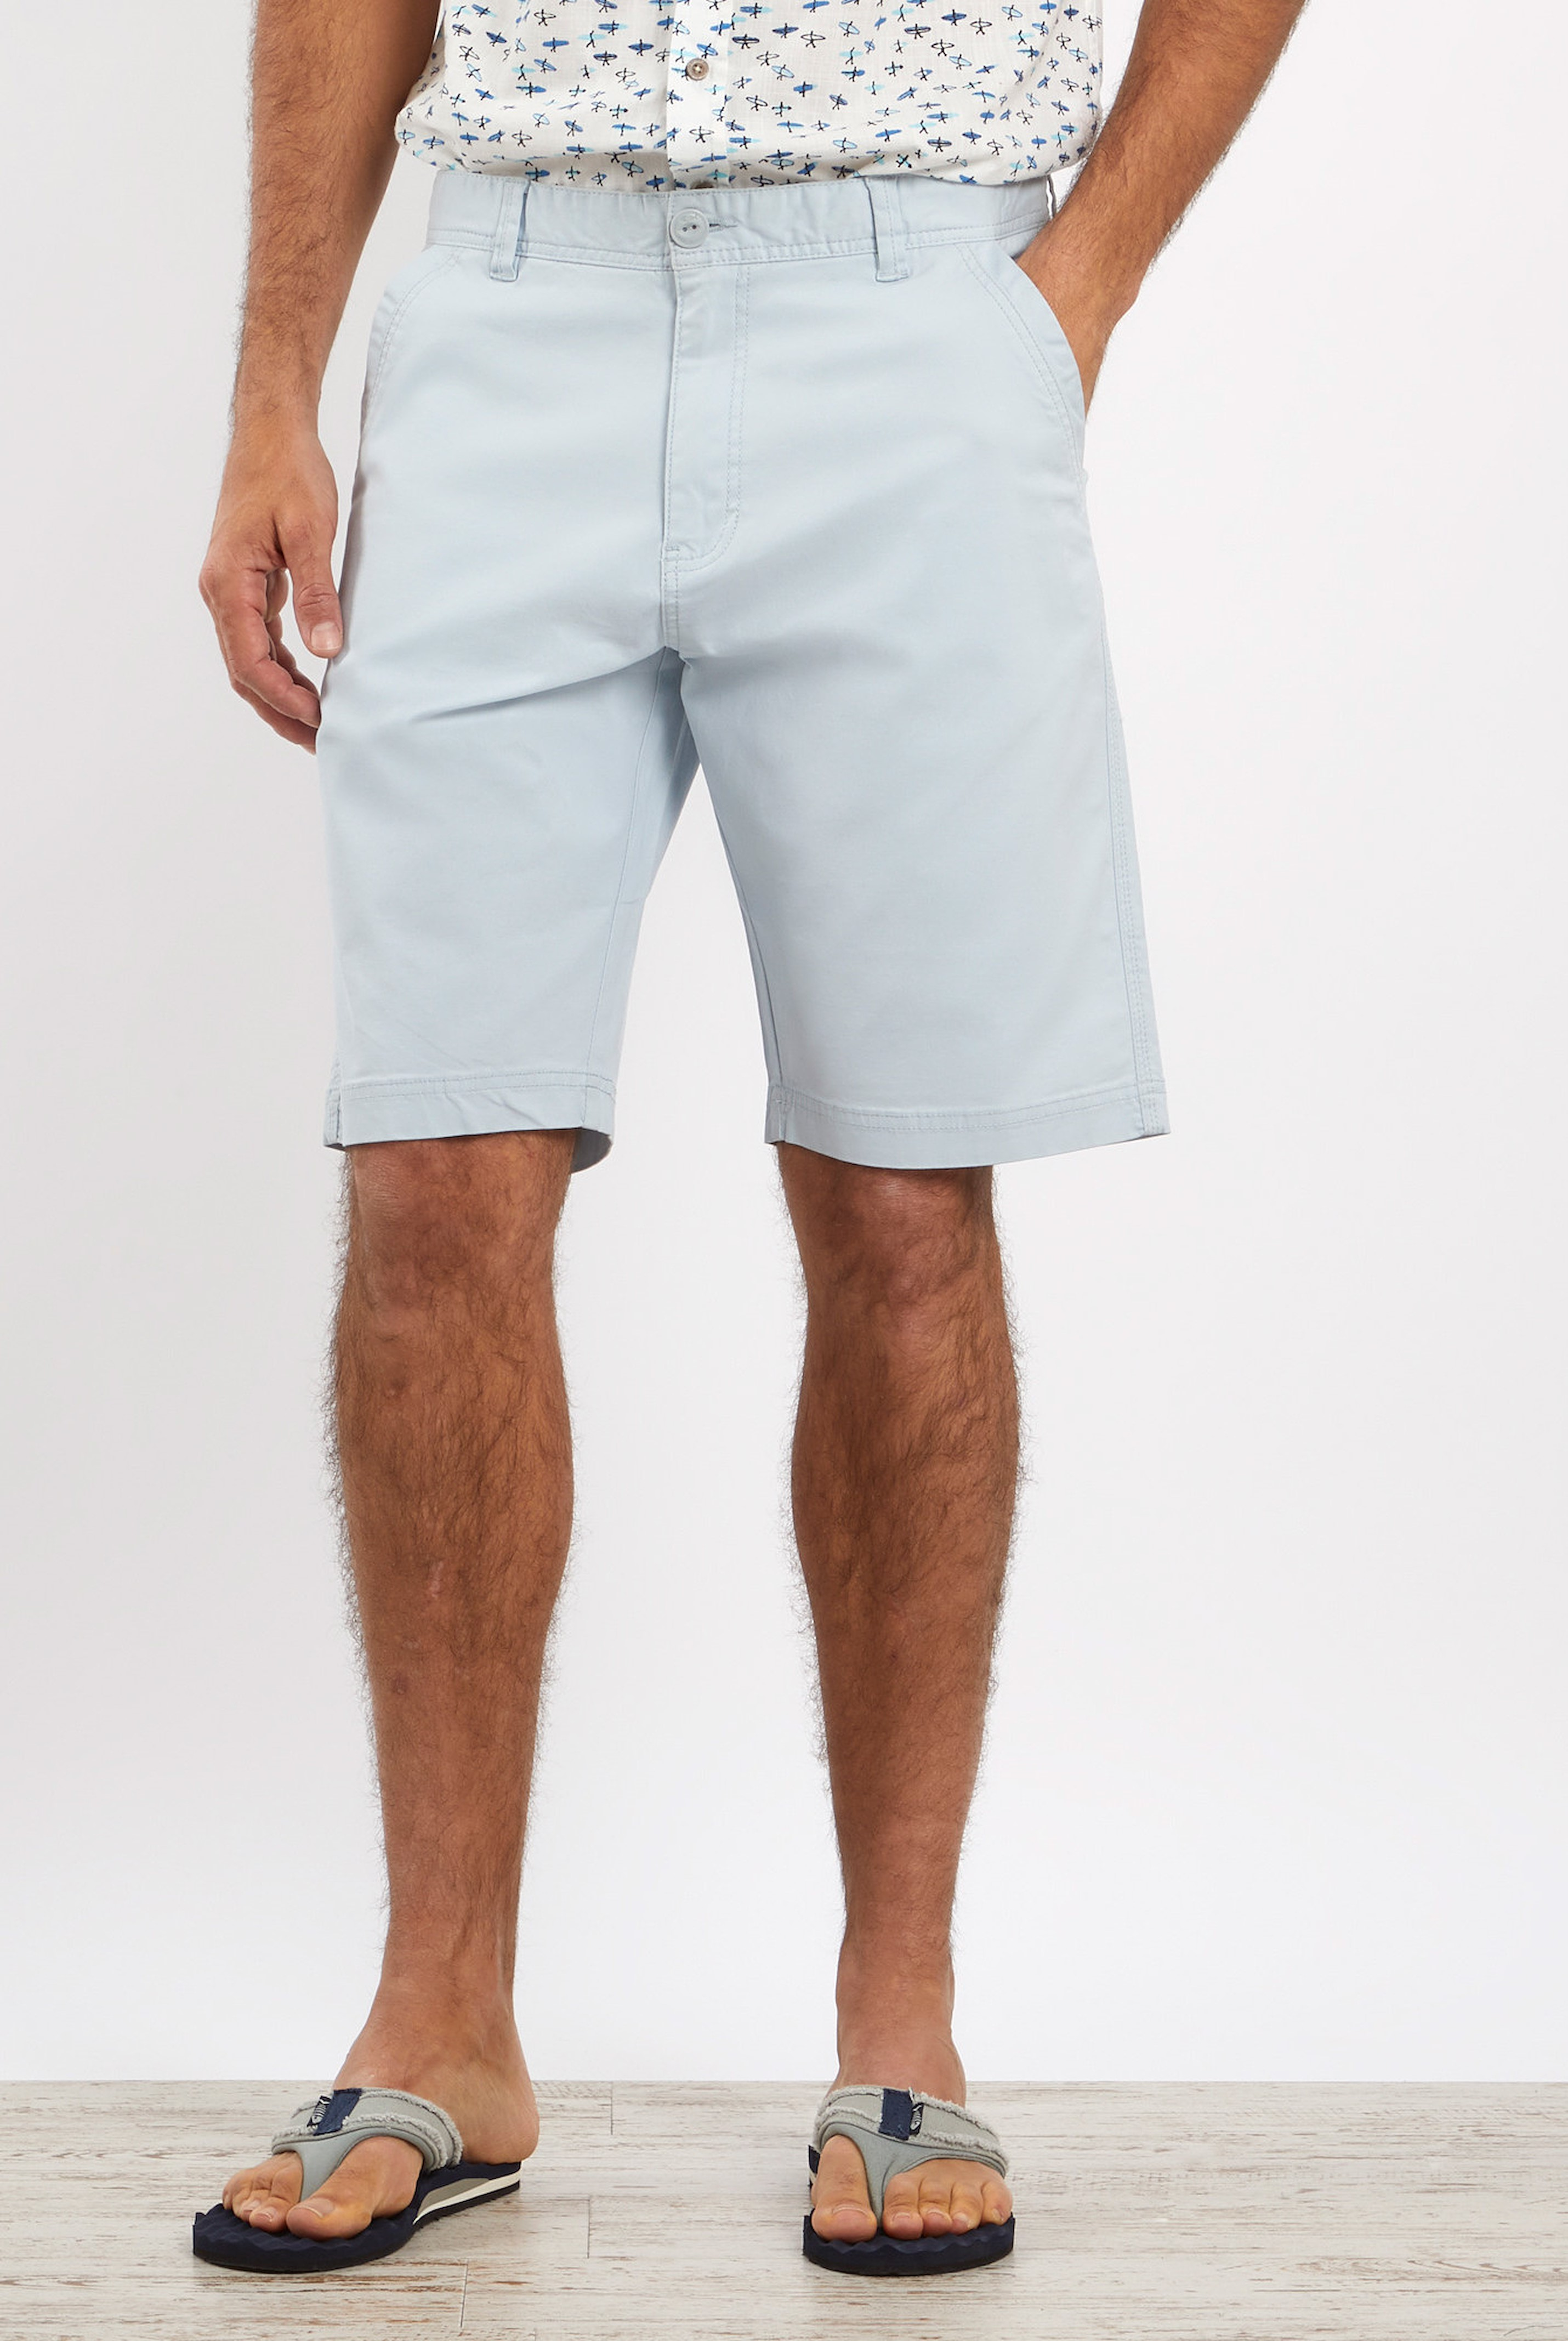 shorts meaning